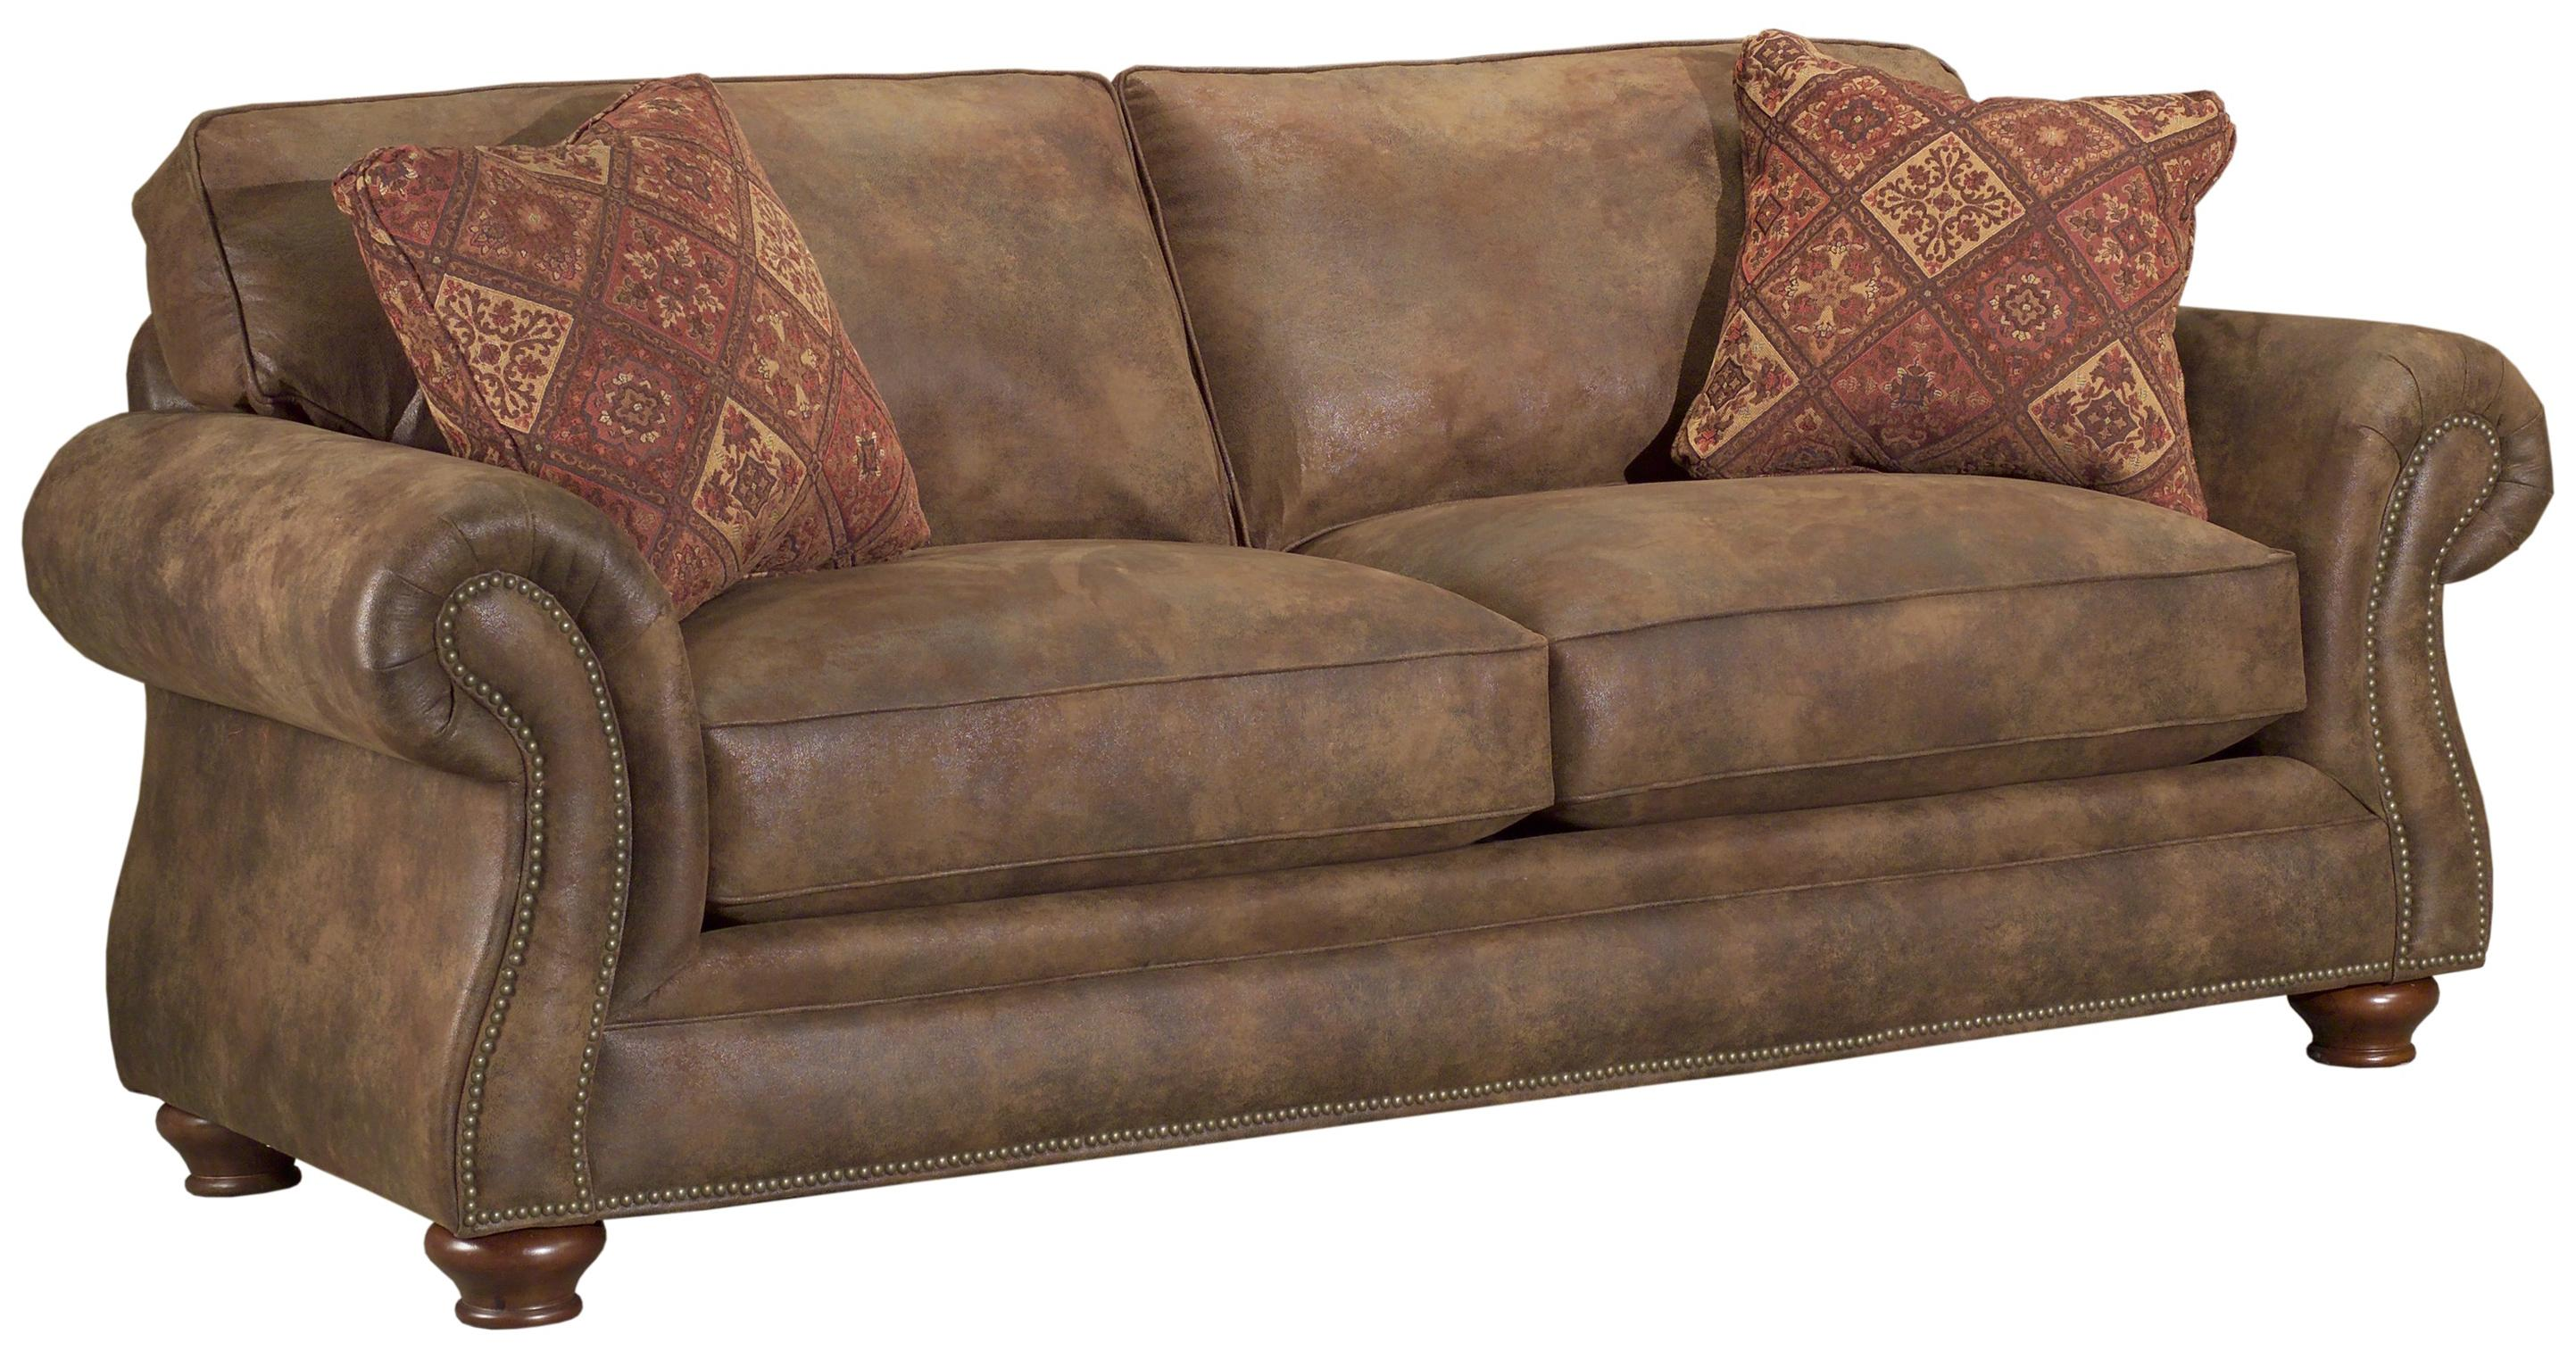 Broyhill Furniture Laramie Air Dream Sofa Sleeper - Item Number: 5081-7A